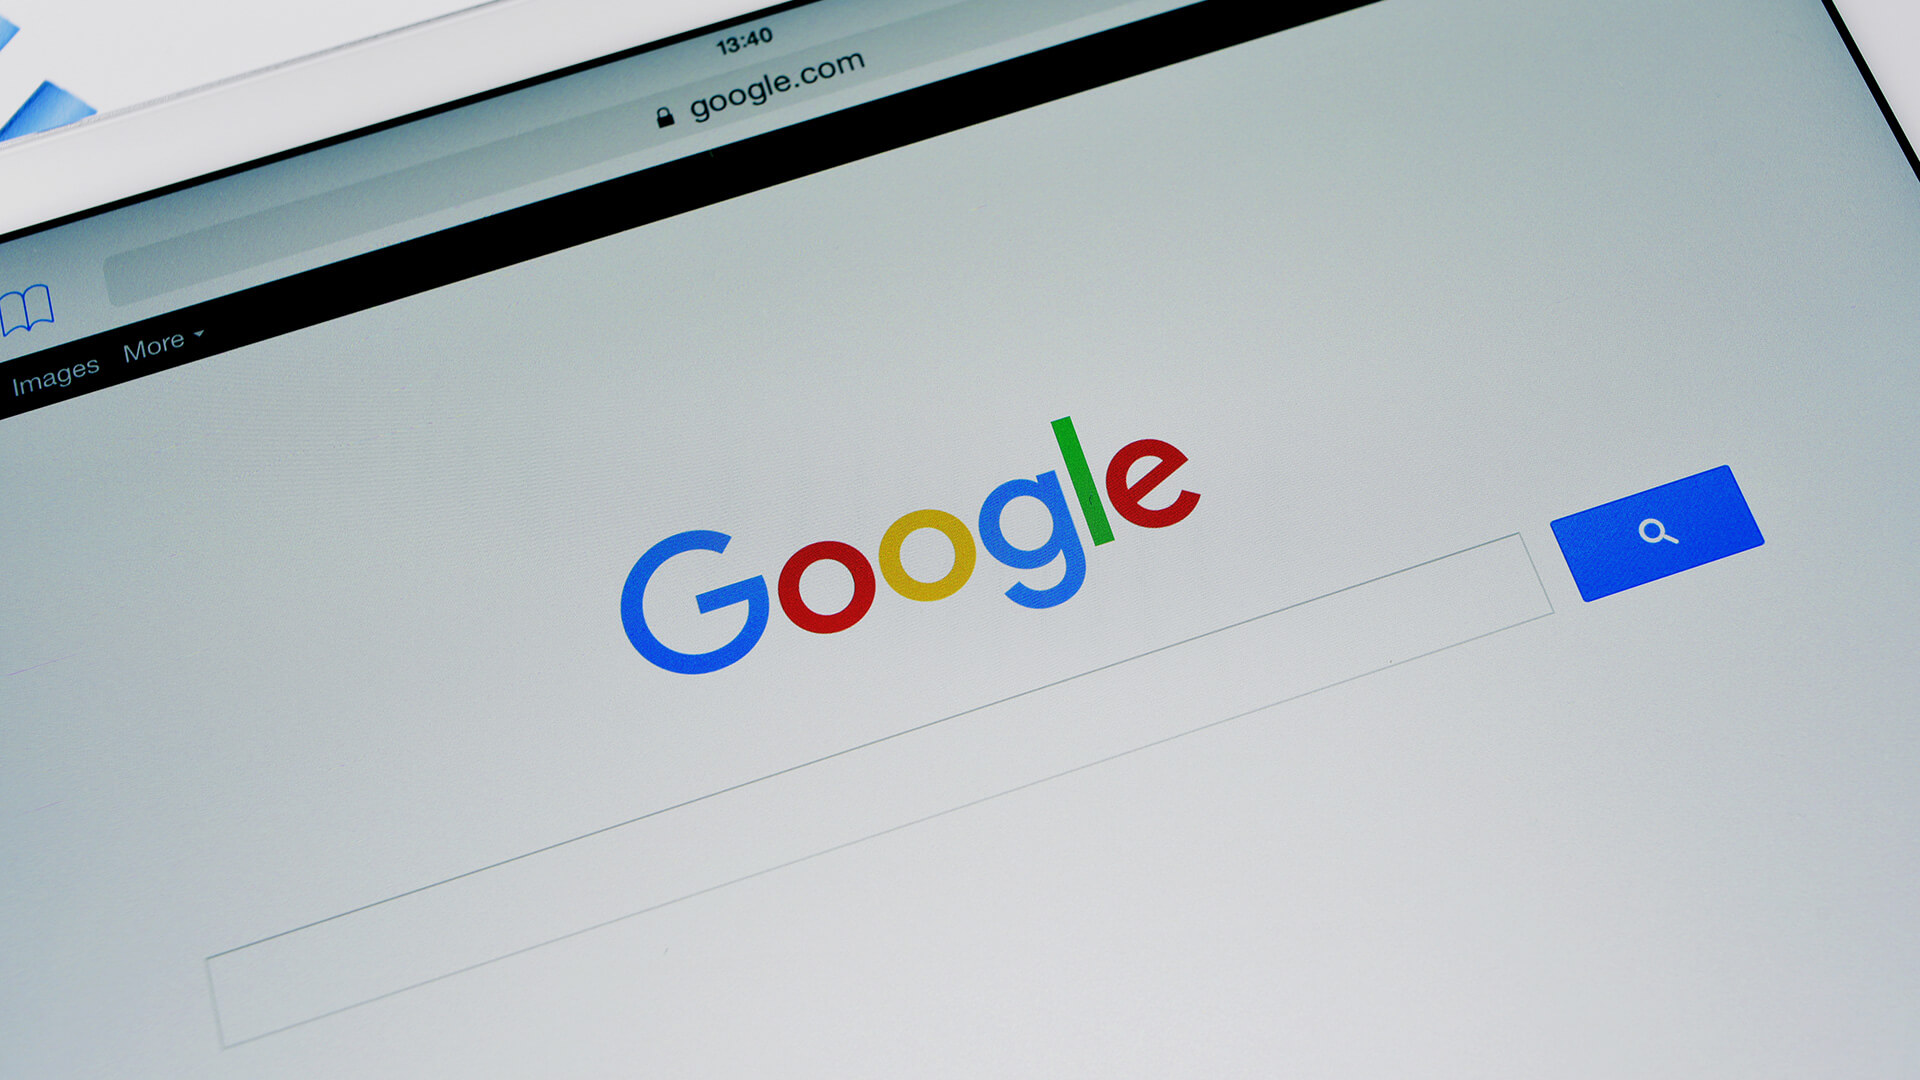 Google search update aims to show more diverse results from different domain names - Search Engine Land